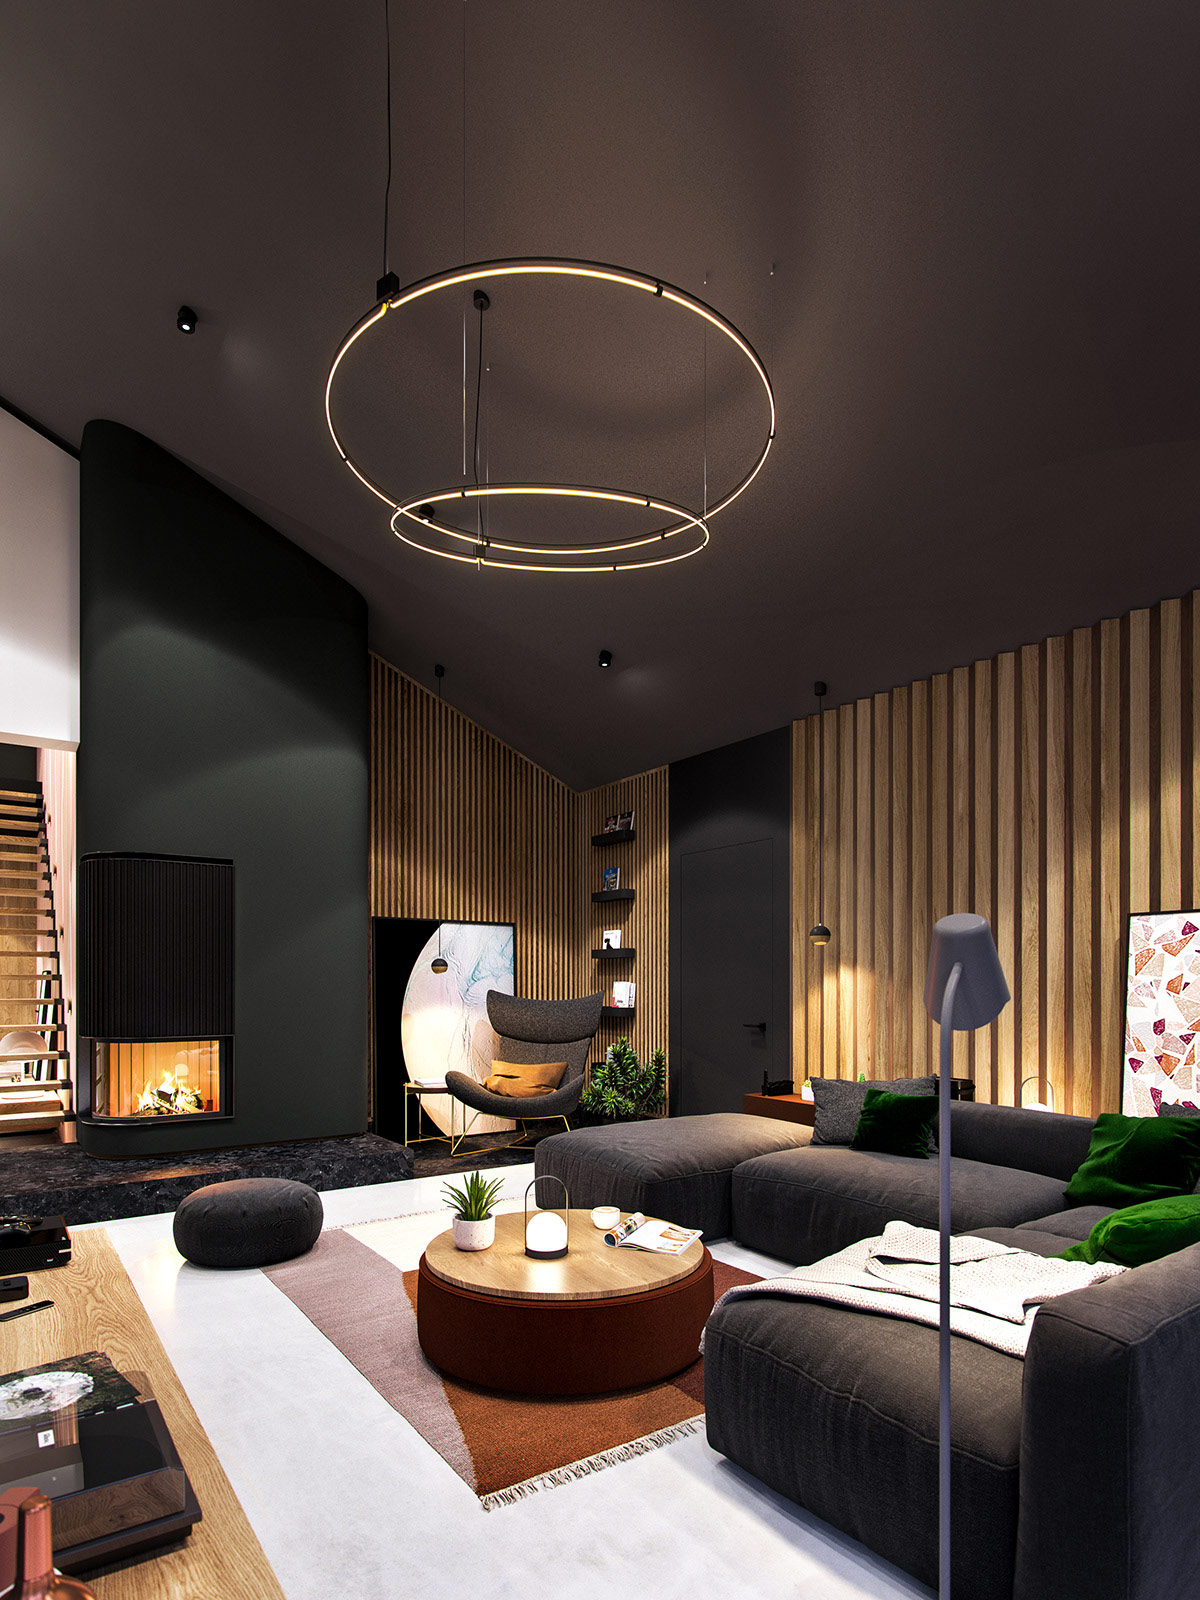 4 | & Interstellar An Out Of This World Stylish Home Interior